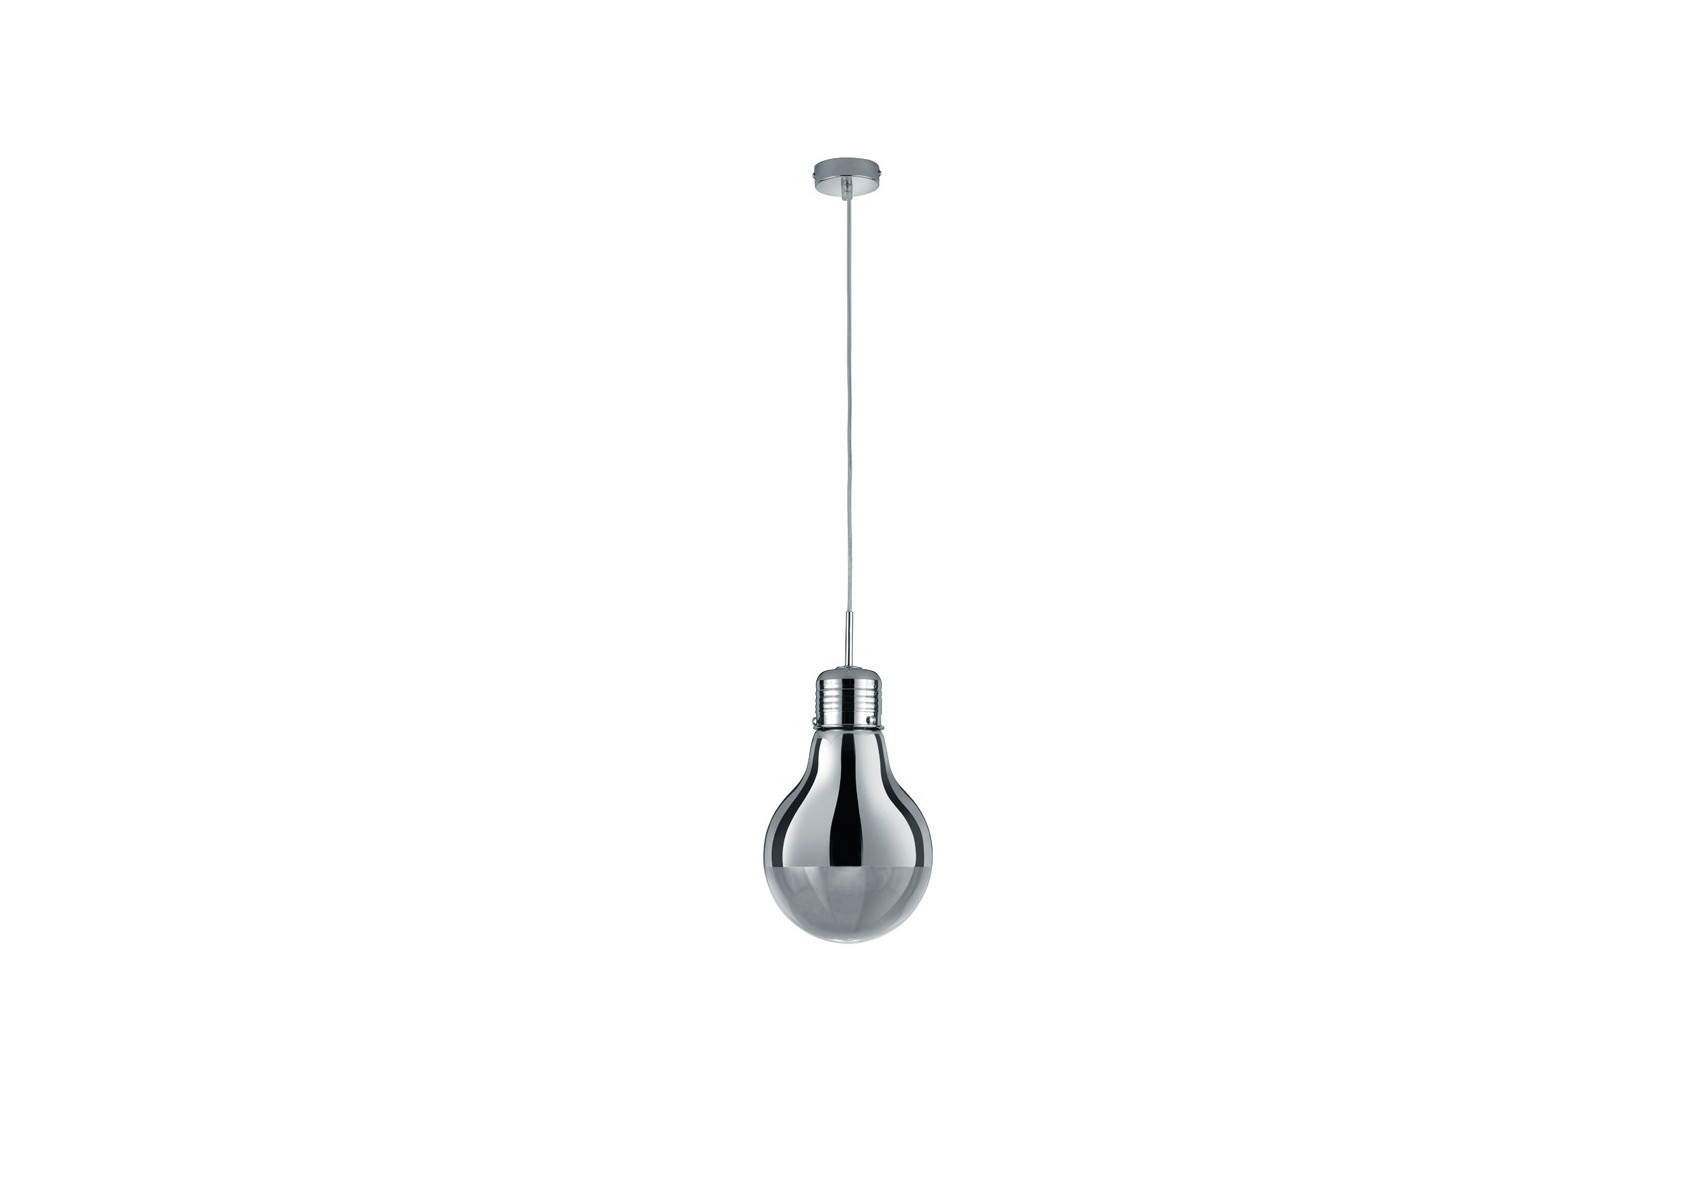 Grande Suspension Luminaire Grande Suspension Design Edison Ampoule Chromé Boite à